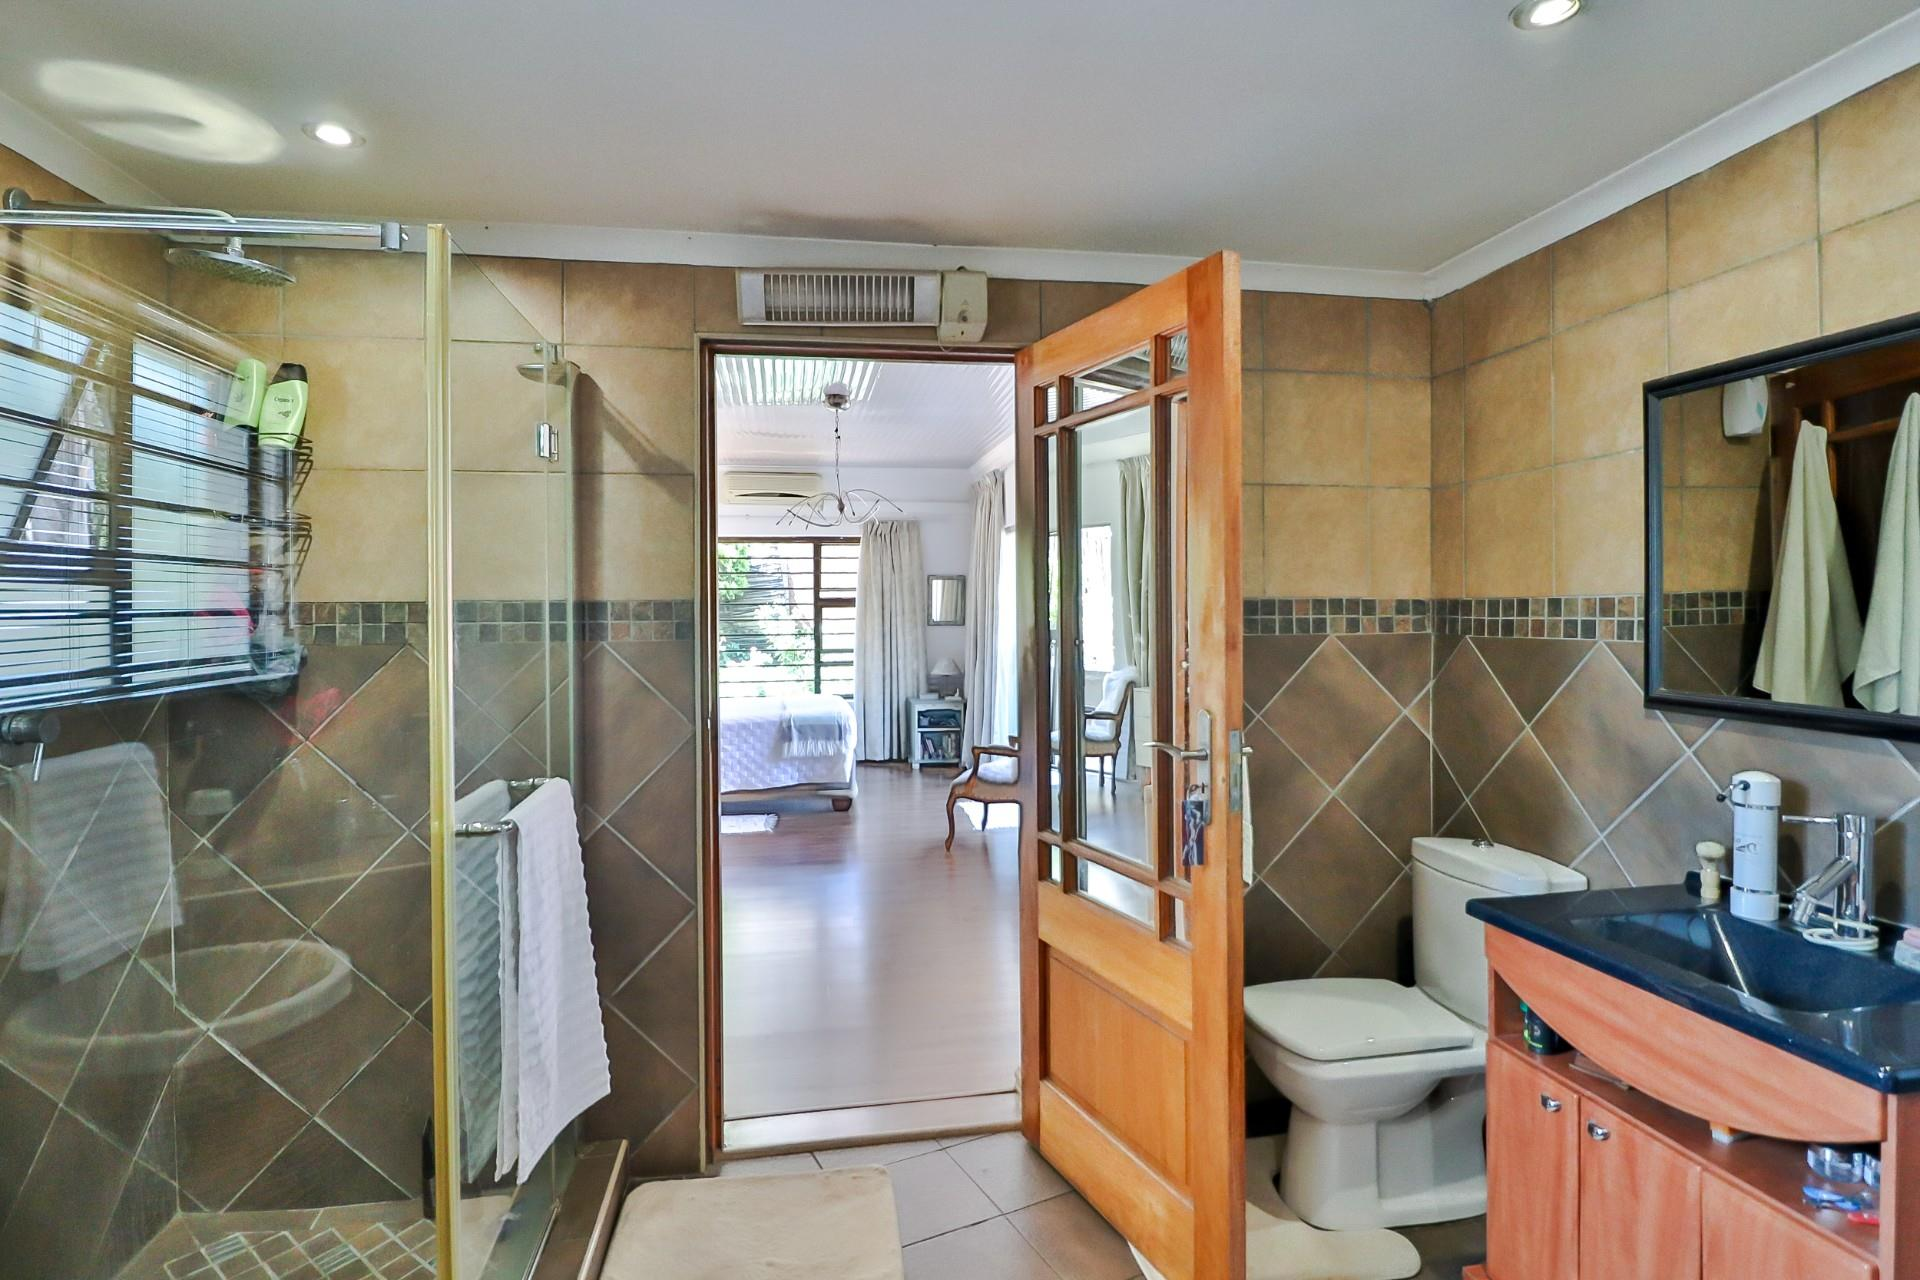 4 Bedroom House For Sale in Malanshof